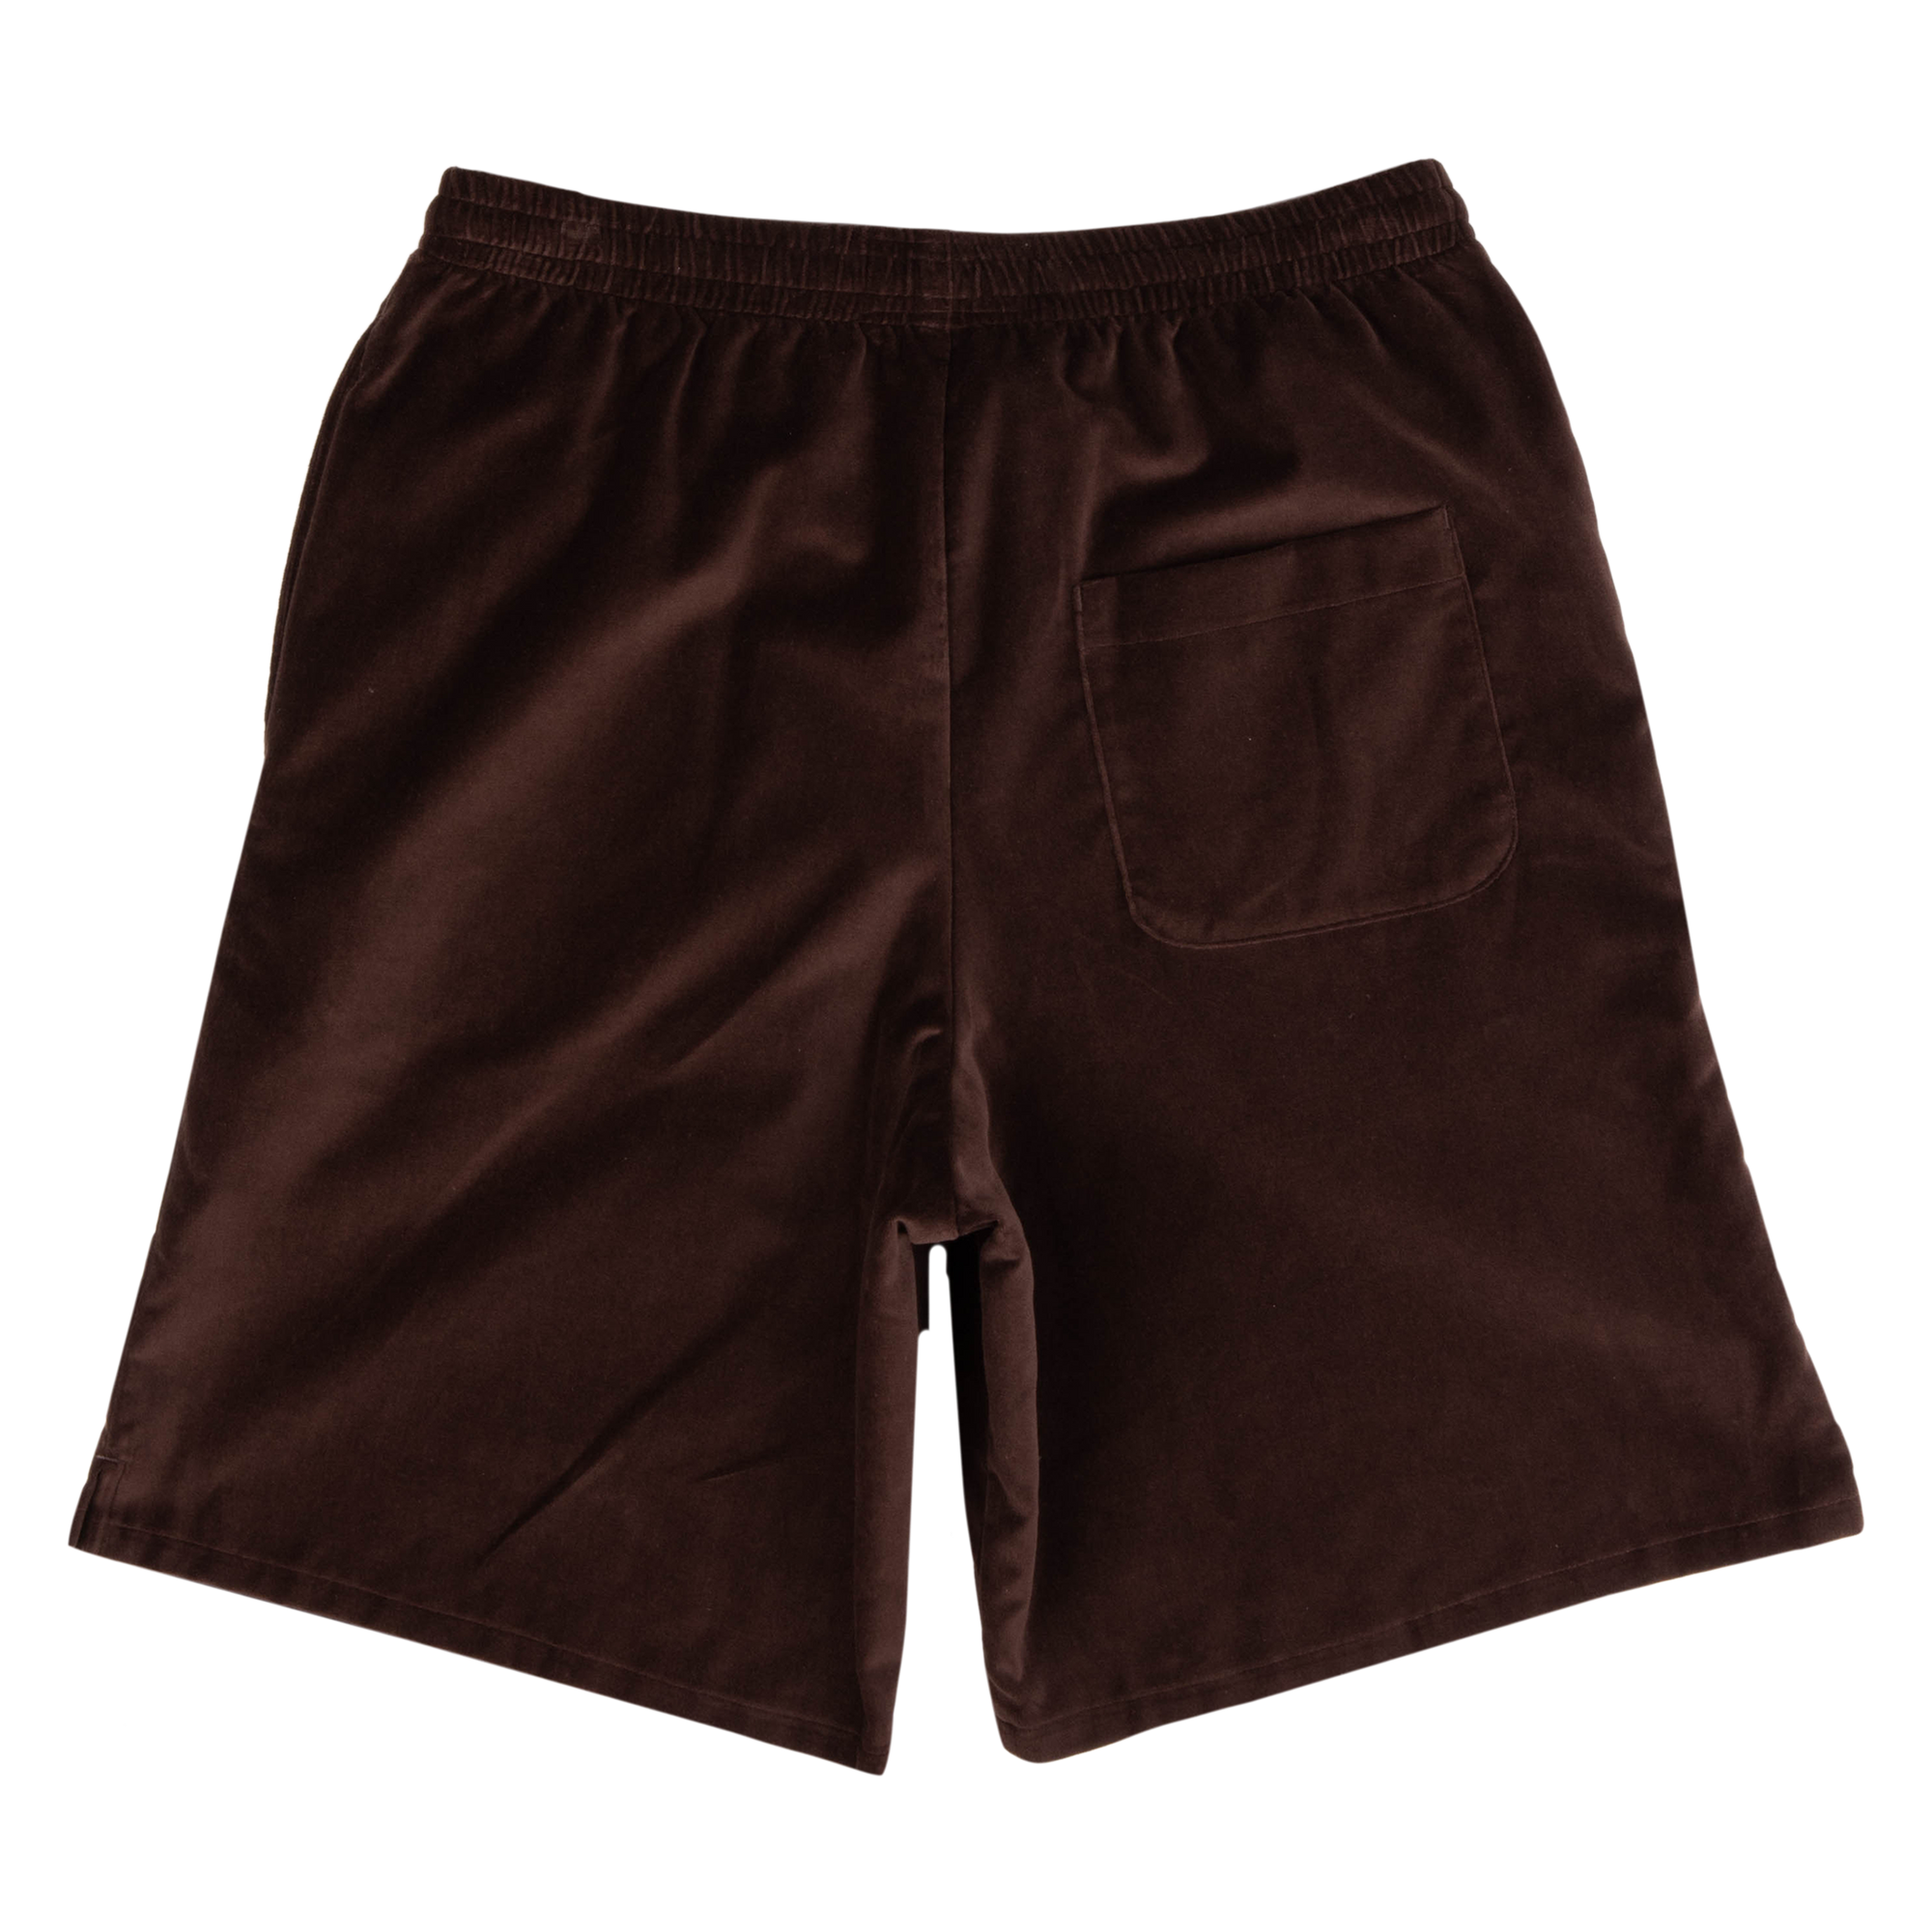 Load image into Gallery viewer, Velvet Basketball Shorts Chocolate | CHECKS DOWNTOWN